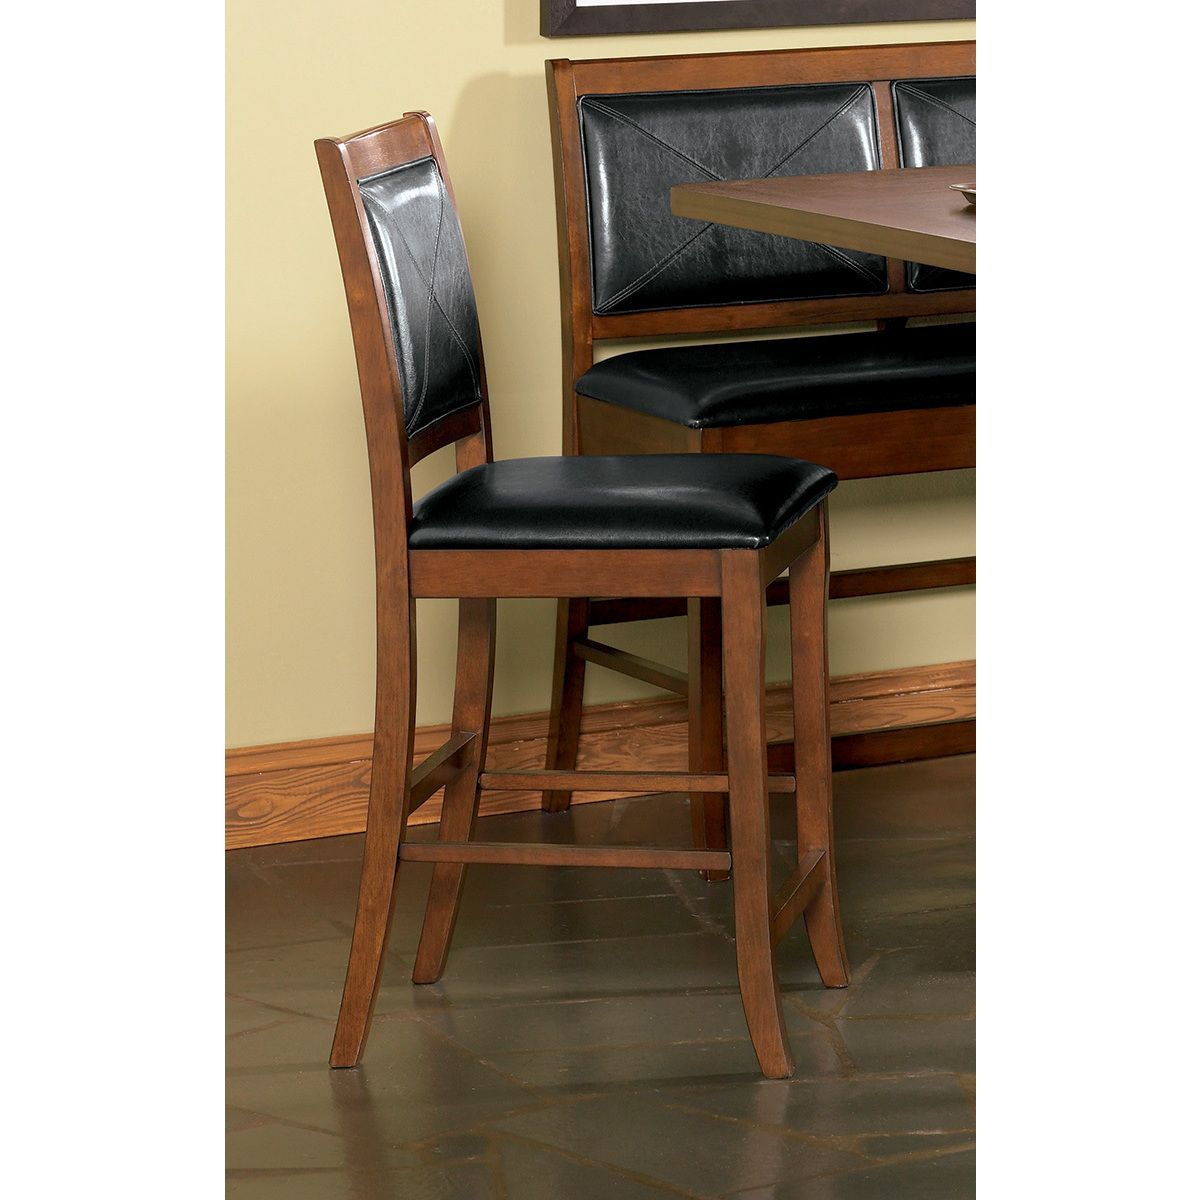 Coaster Company Contemporary Dining Chair Frame, Black Seat